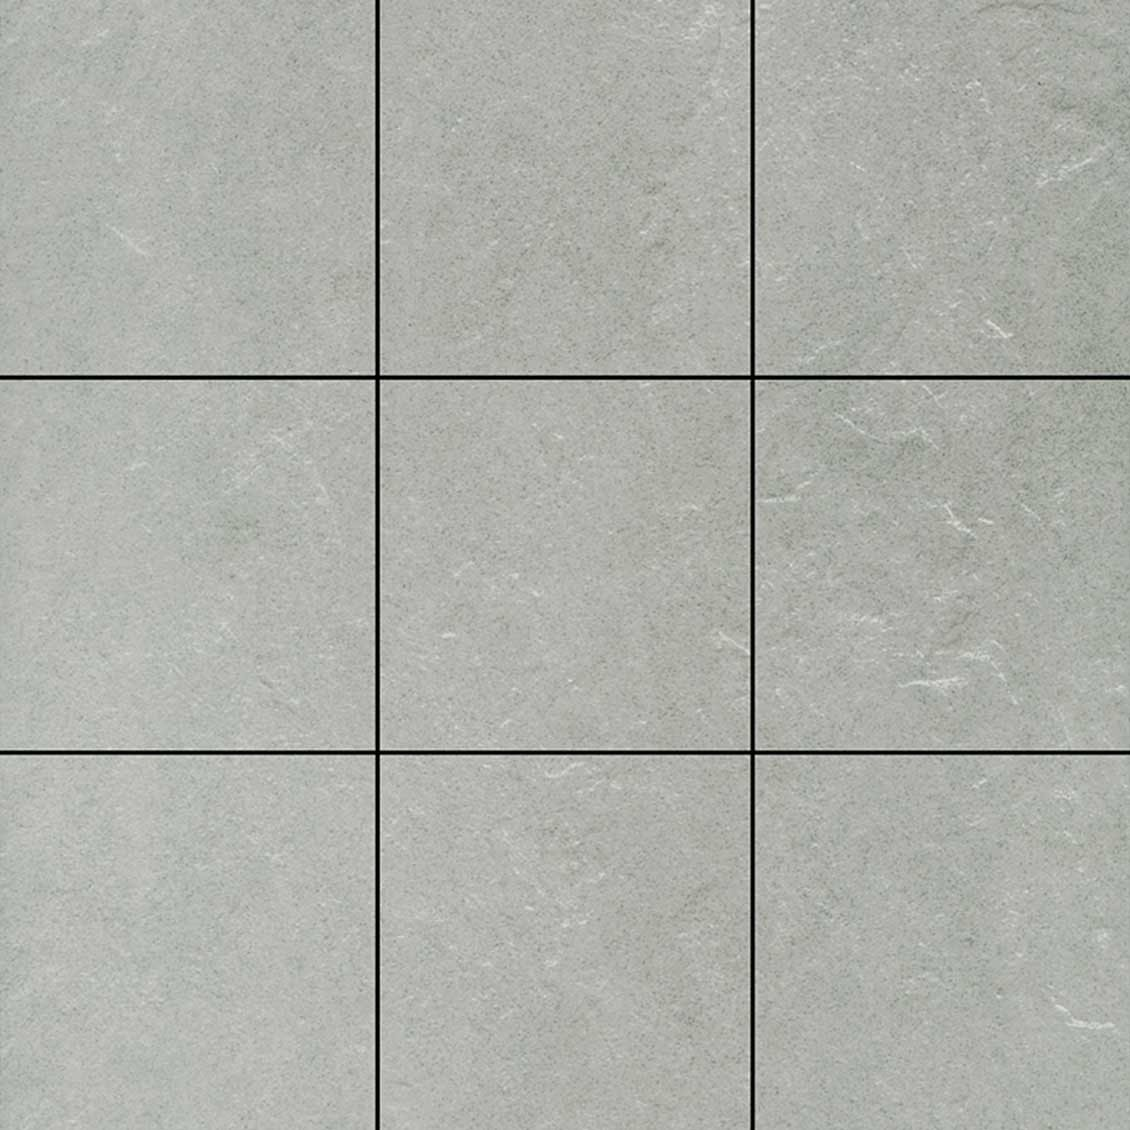 Carrelage design carrelage texture moderne design pour for Carrelage moderne